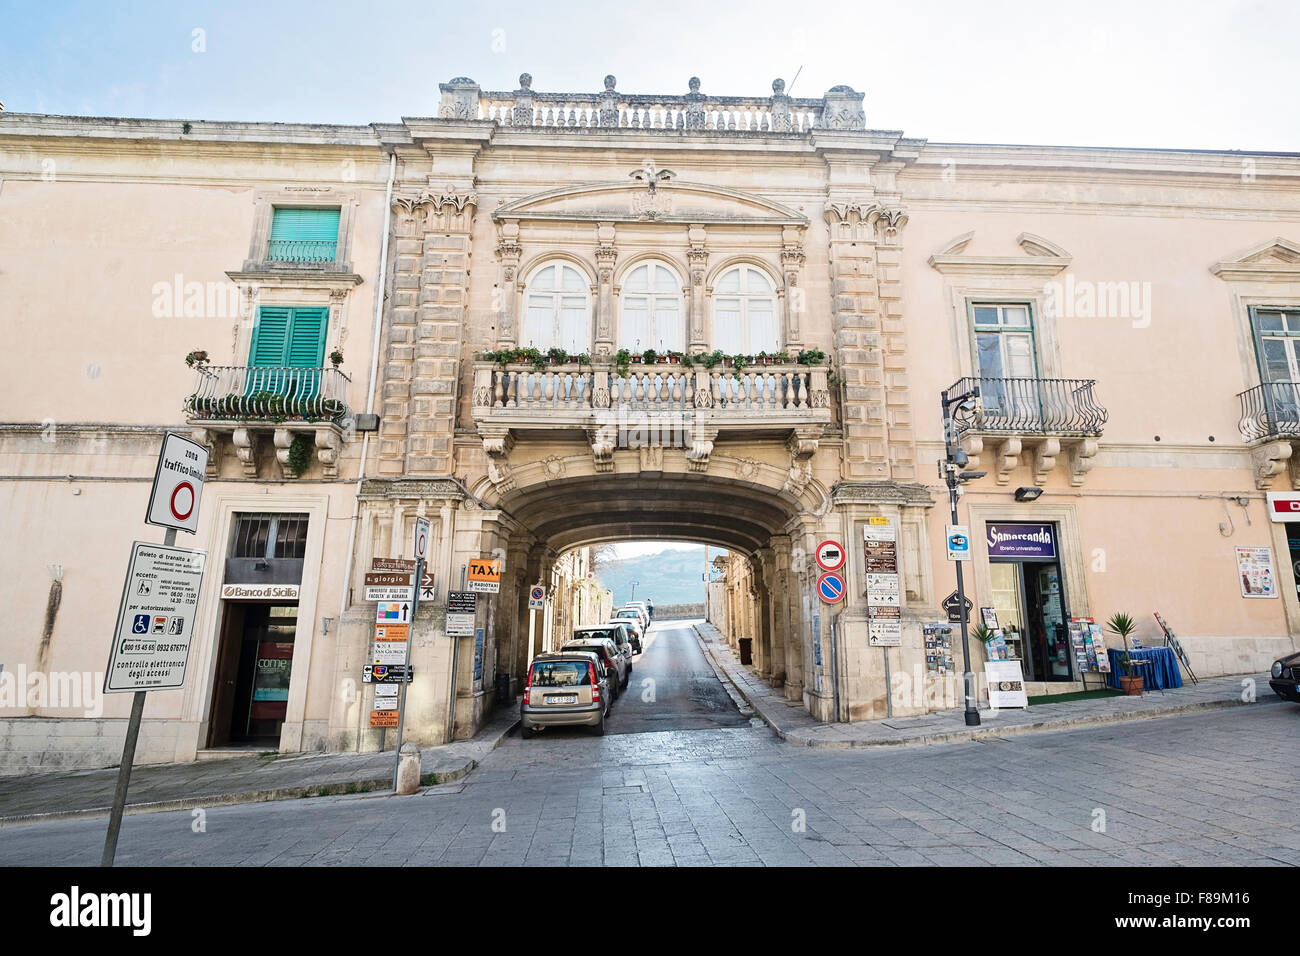 Beautiful baroque arch over road leading from Piazza del Duomo, Ragusa, Sicily, Italy with view beyond. - Stock Image